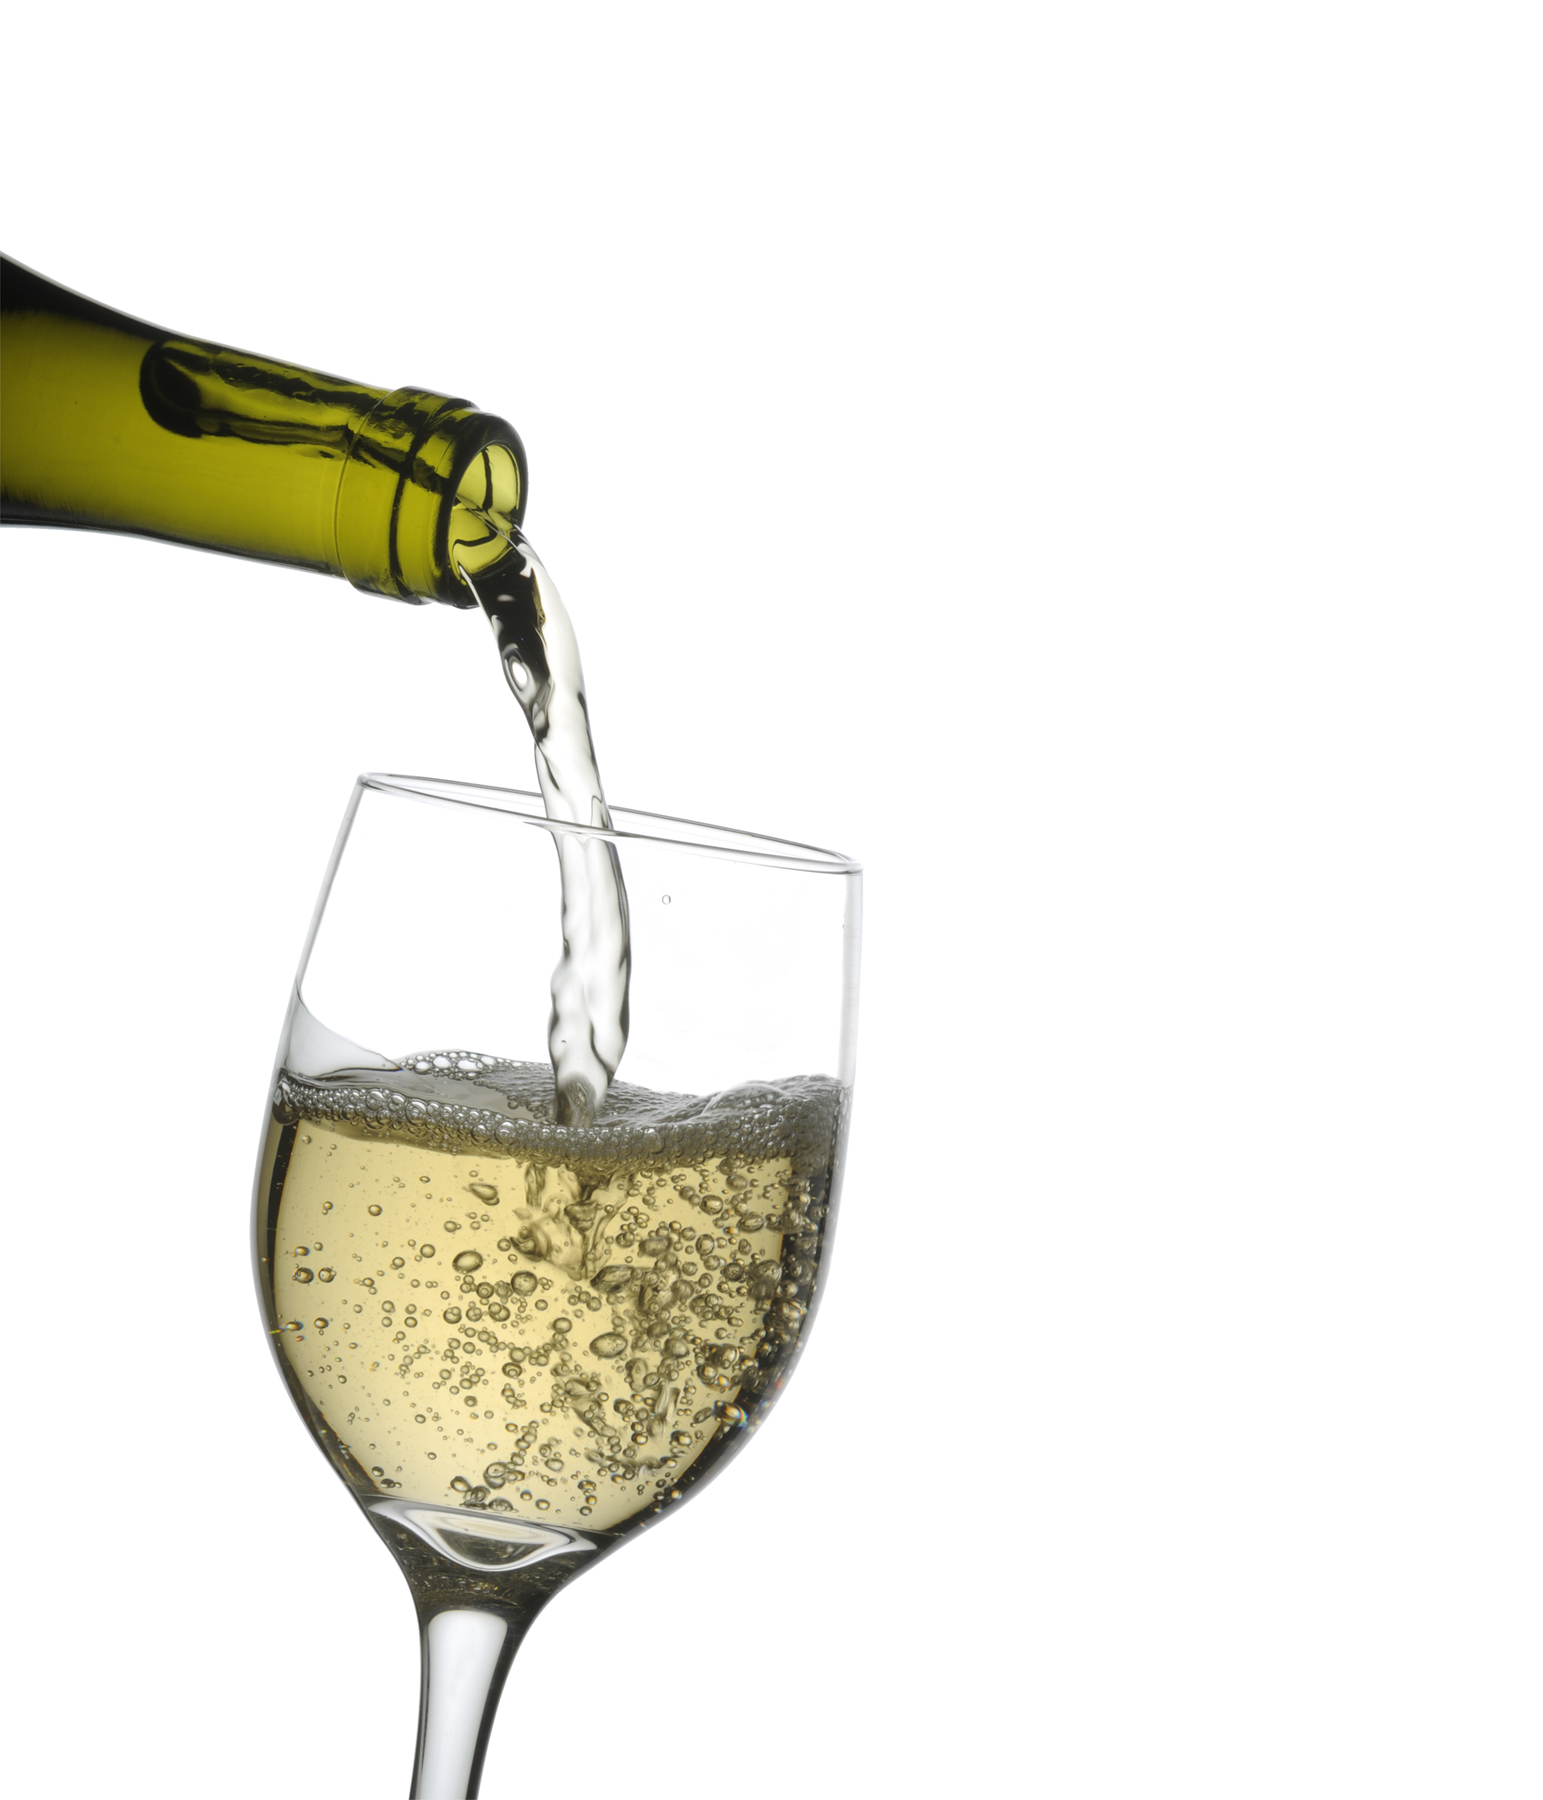 How to Remove White Wine Stains